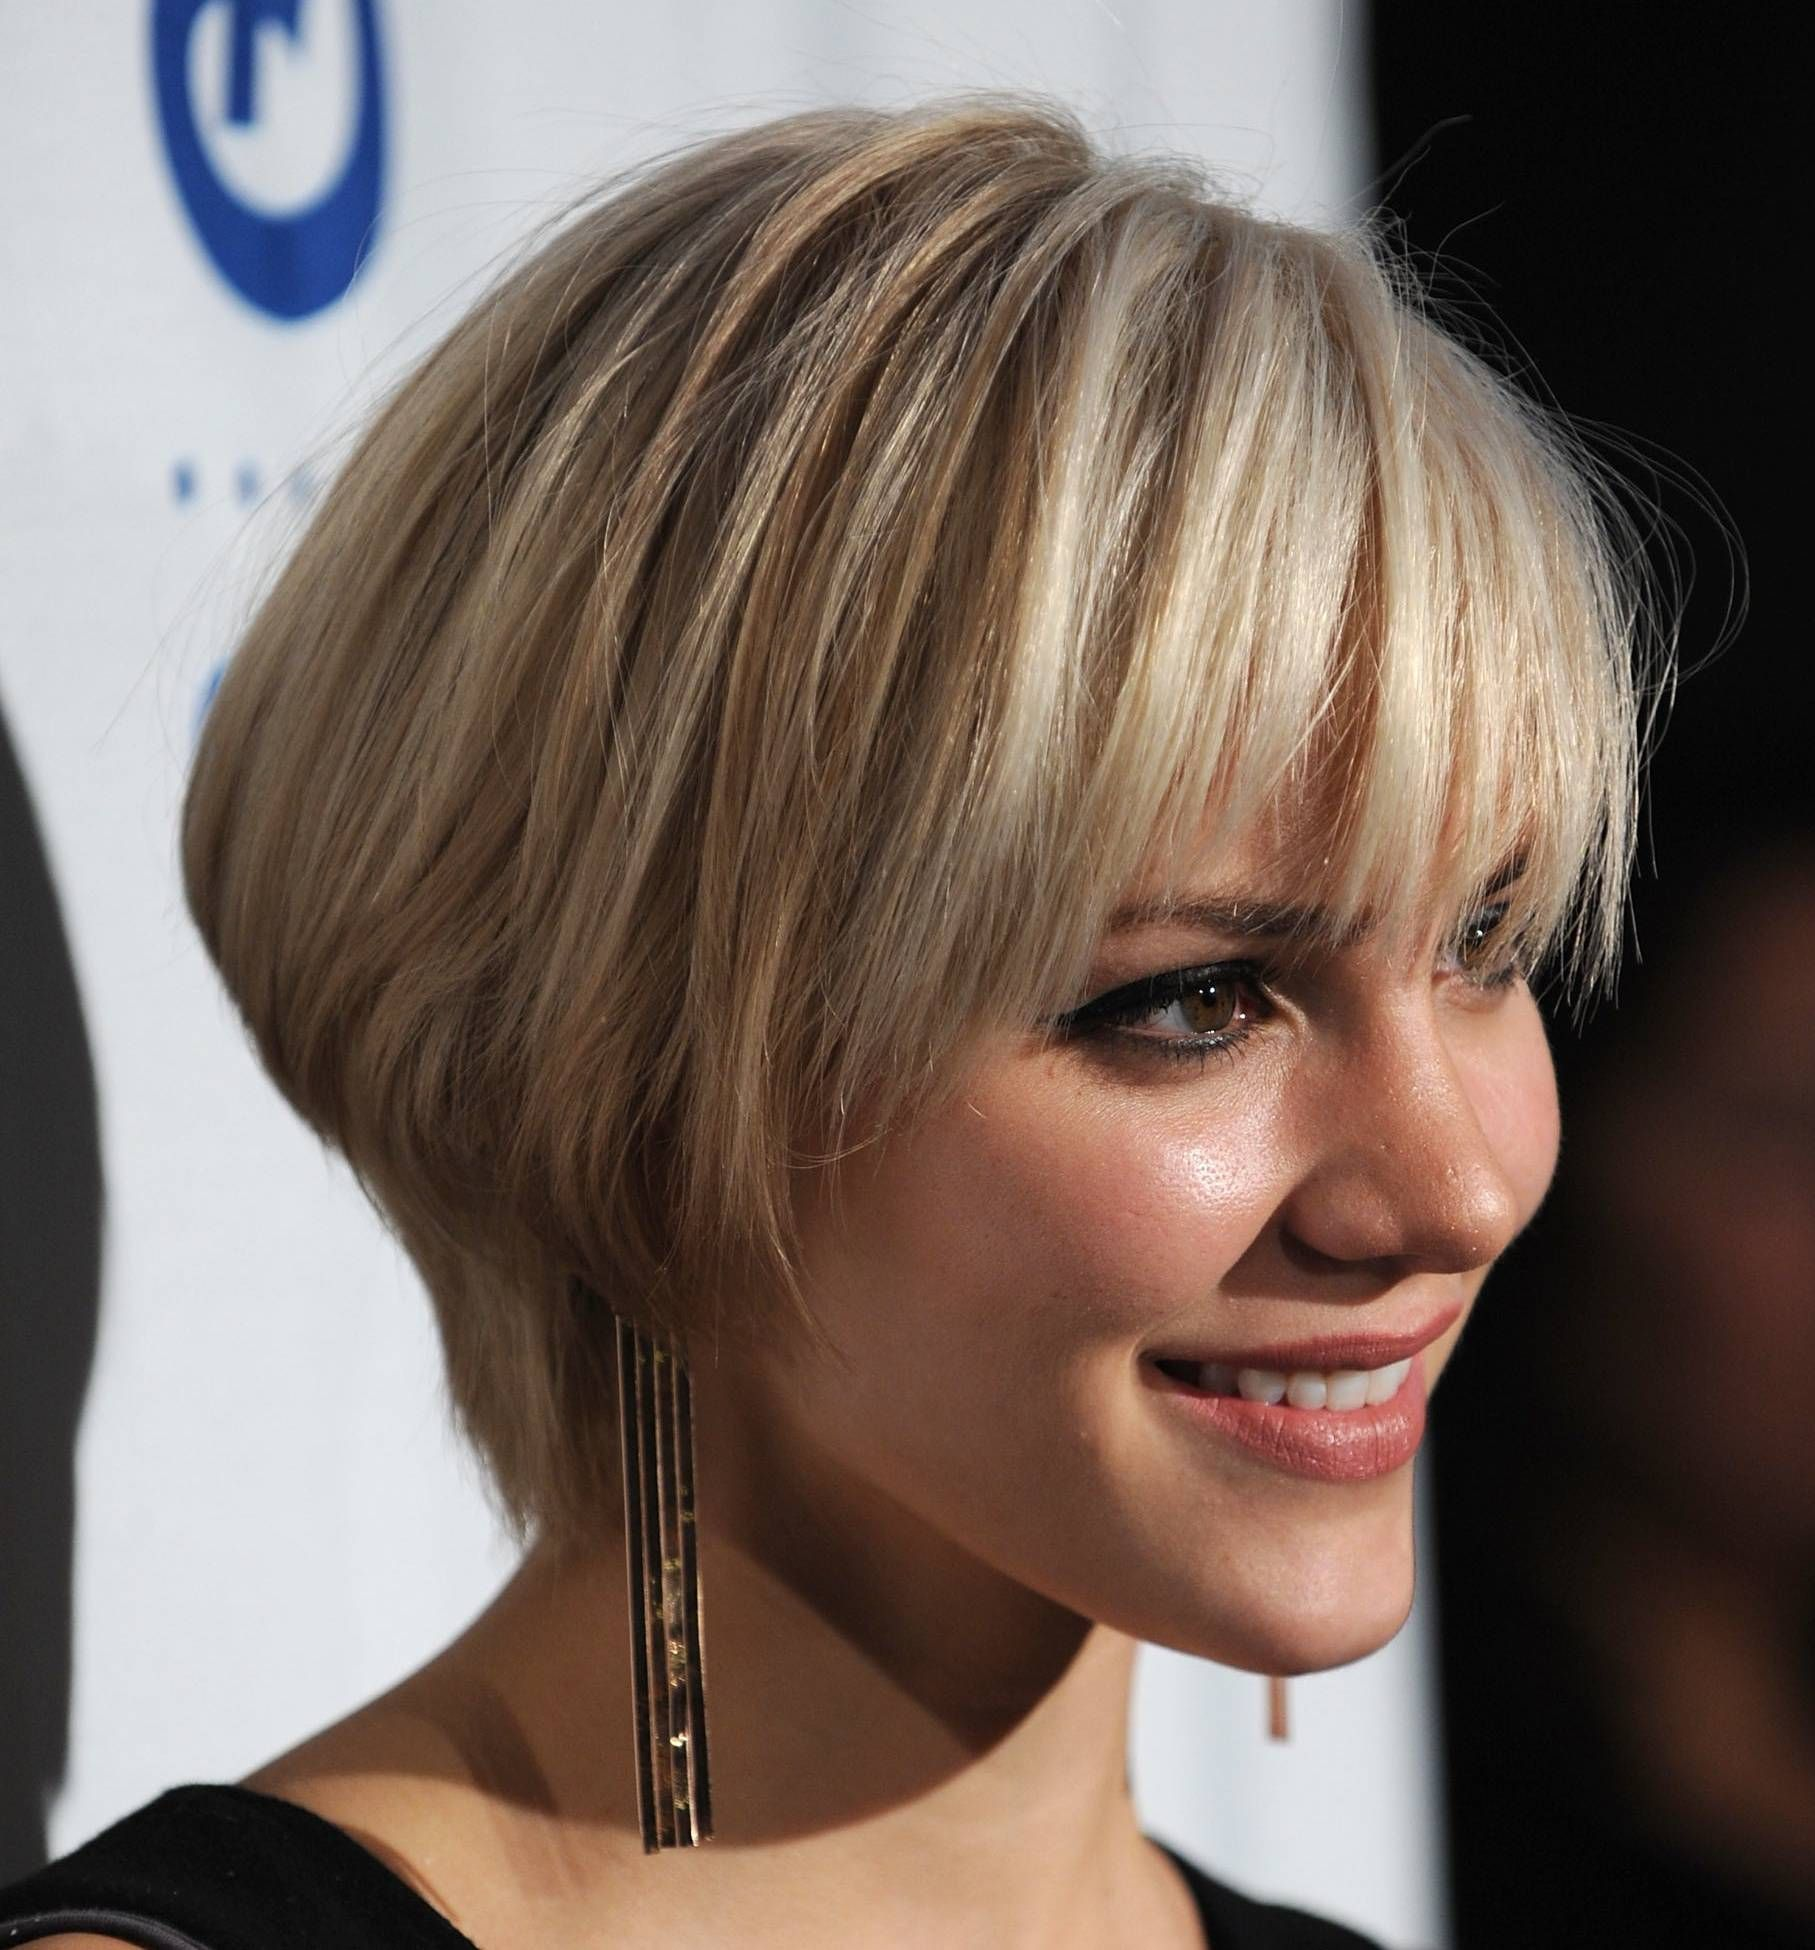 Fabulous 1000 Images About Cut Haircuts On Pinterest Whippy Cake Short Short Hairstyles For Black Women Fulllsitofus